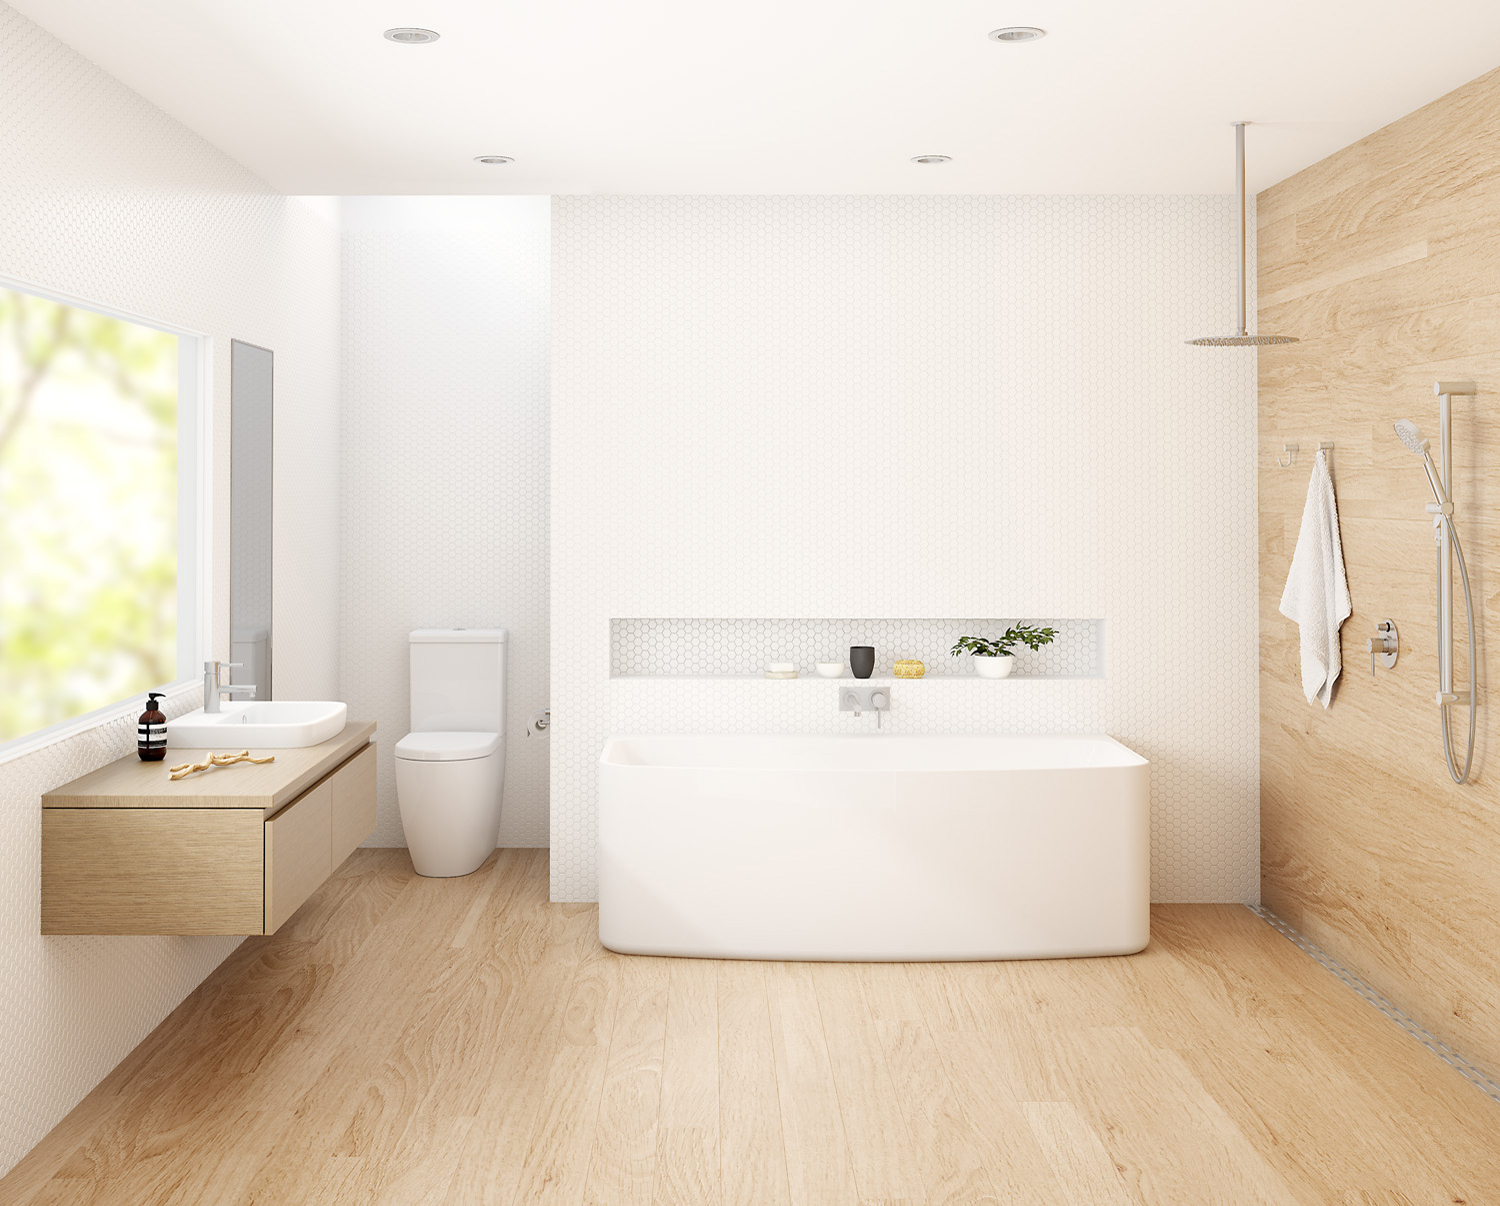 Badkamer Lichte Vloer Donkere Wand The Latest In Bathrooms From Caroma Completehome